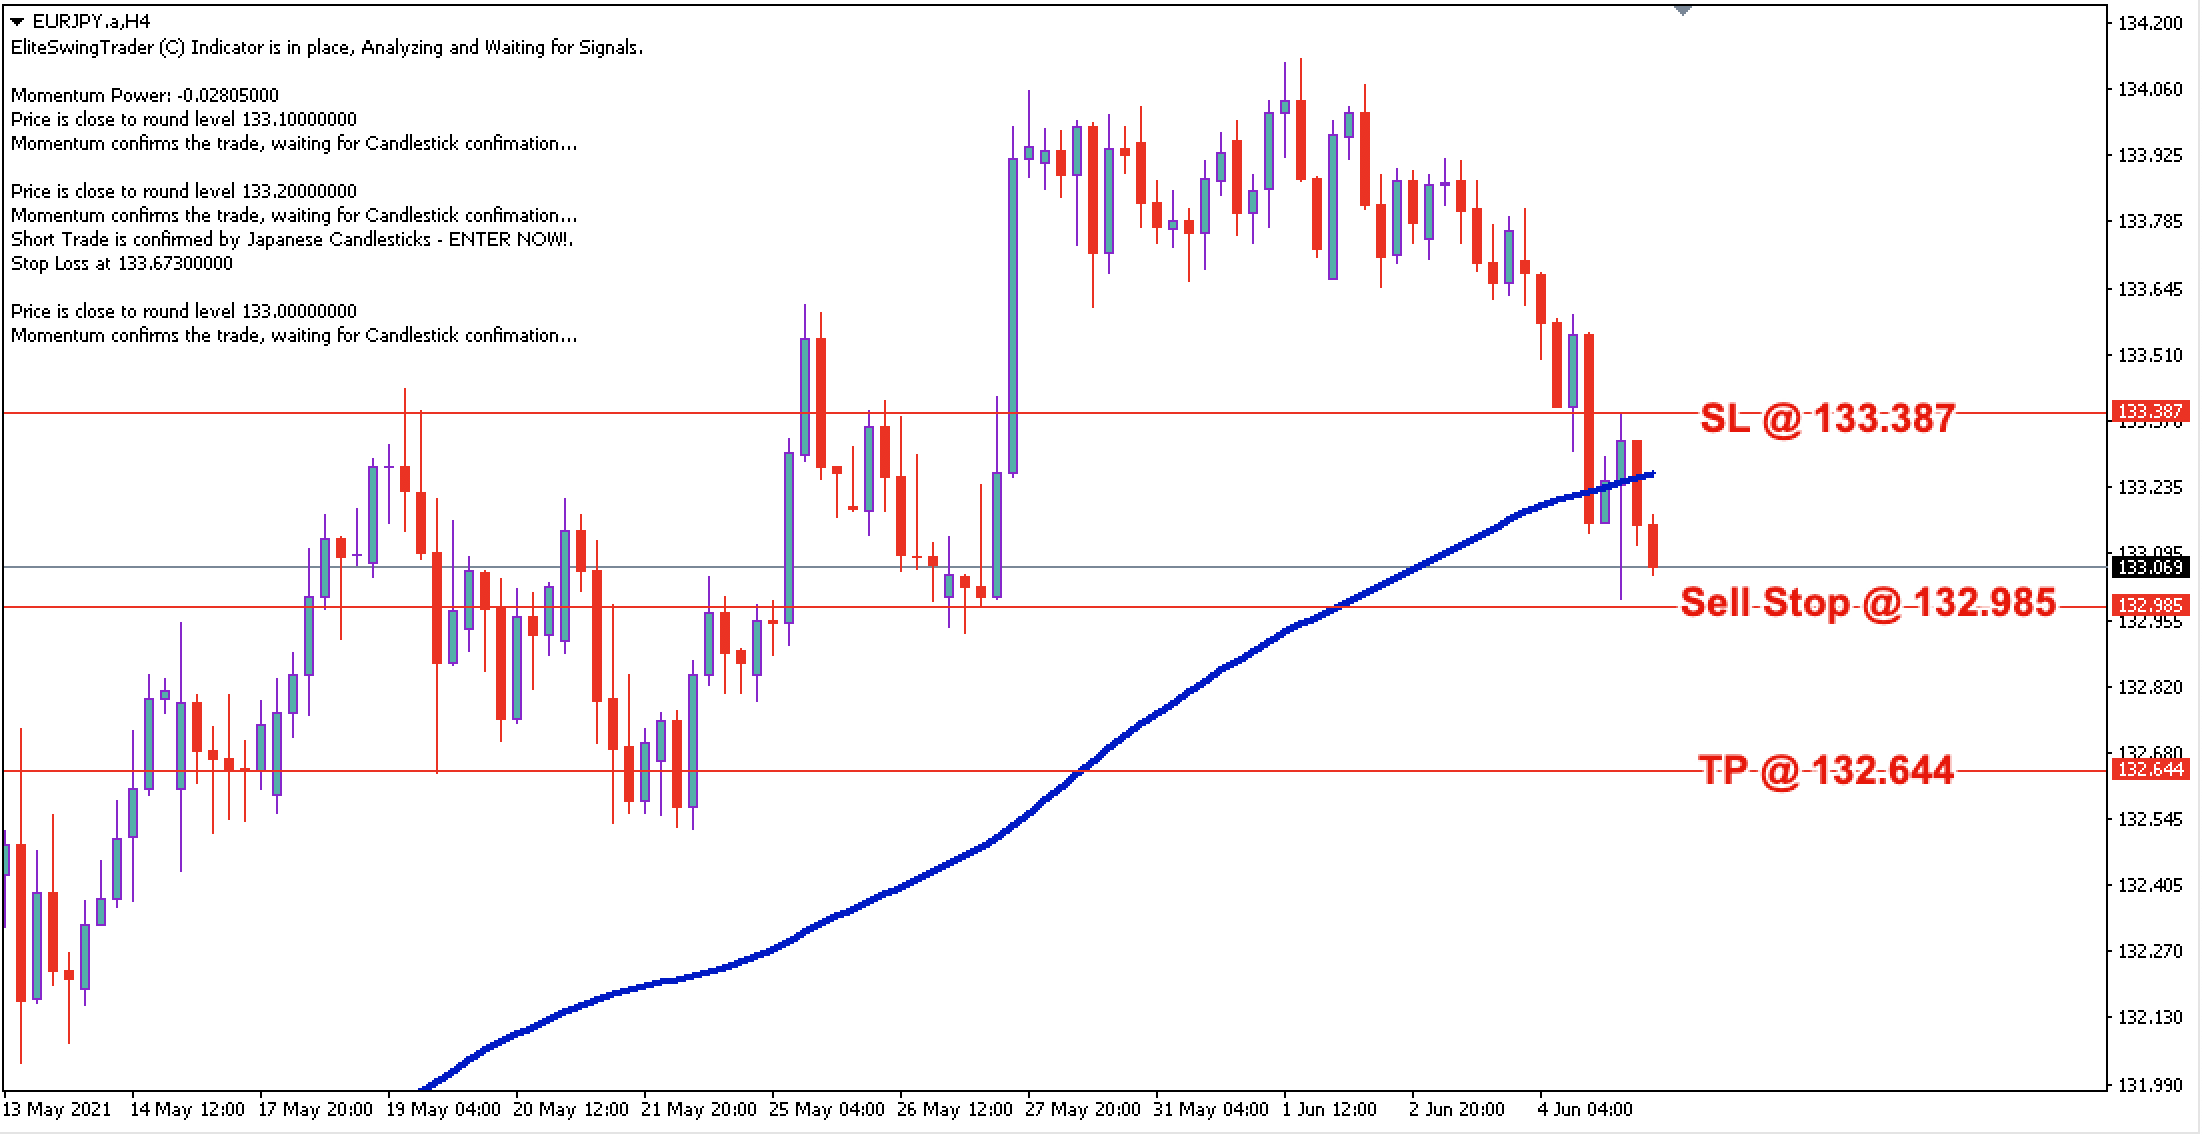 EUR/JPY Daily Price Forecast – 7th June 2021